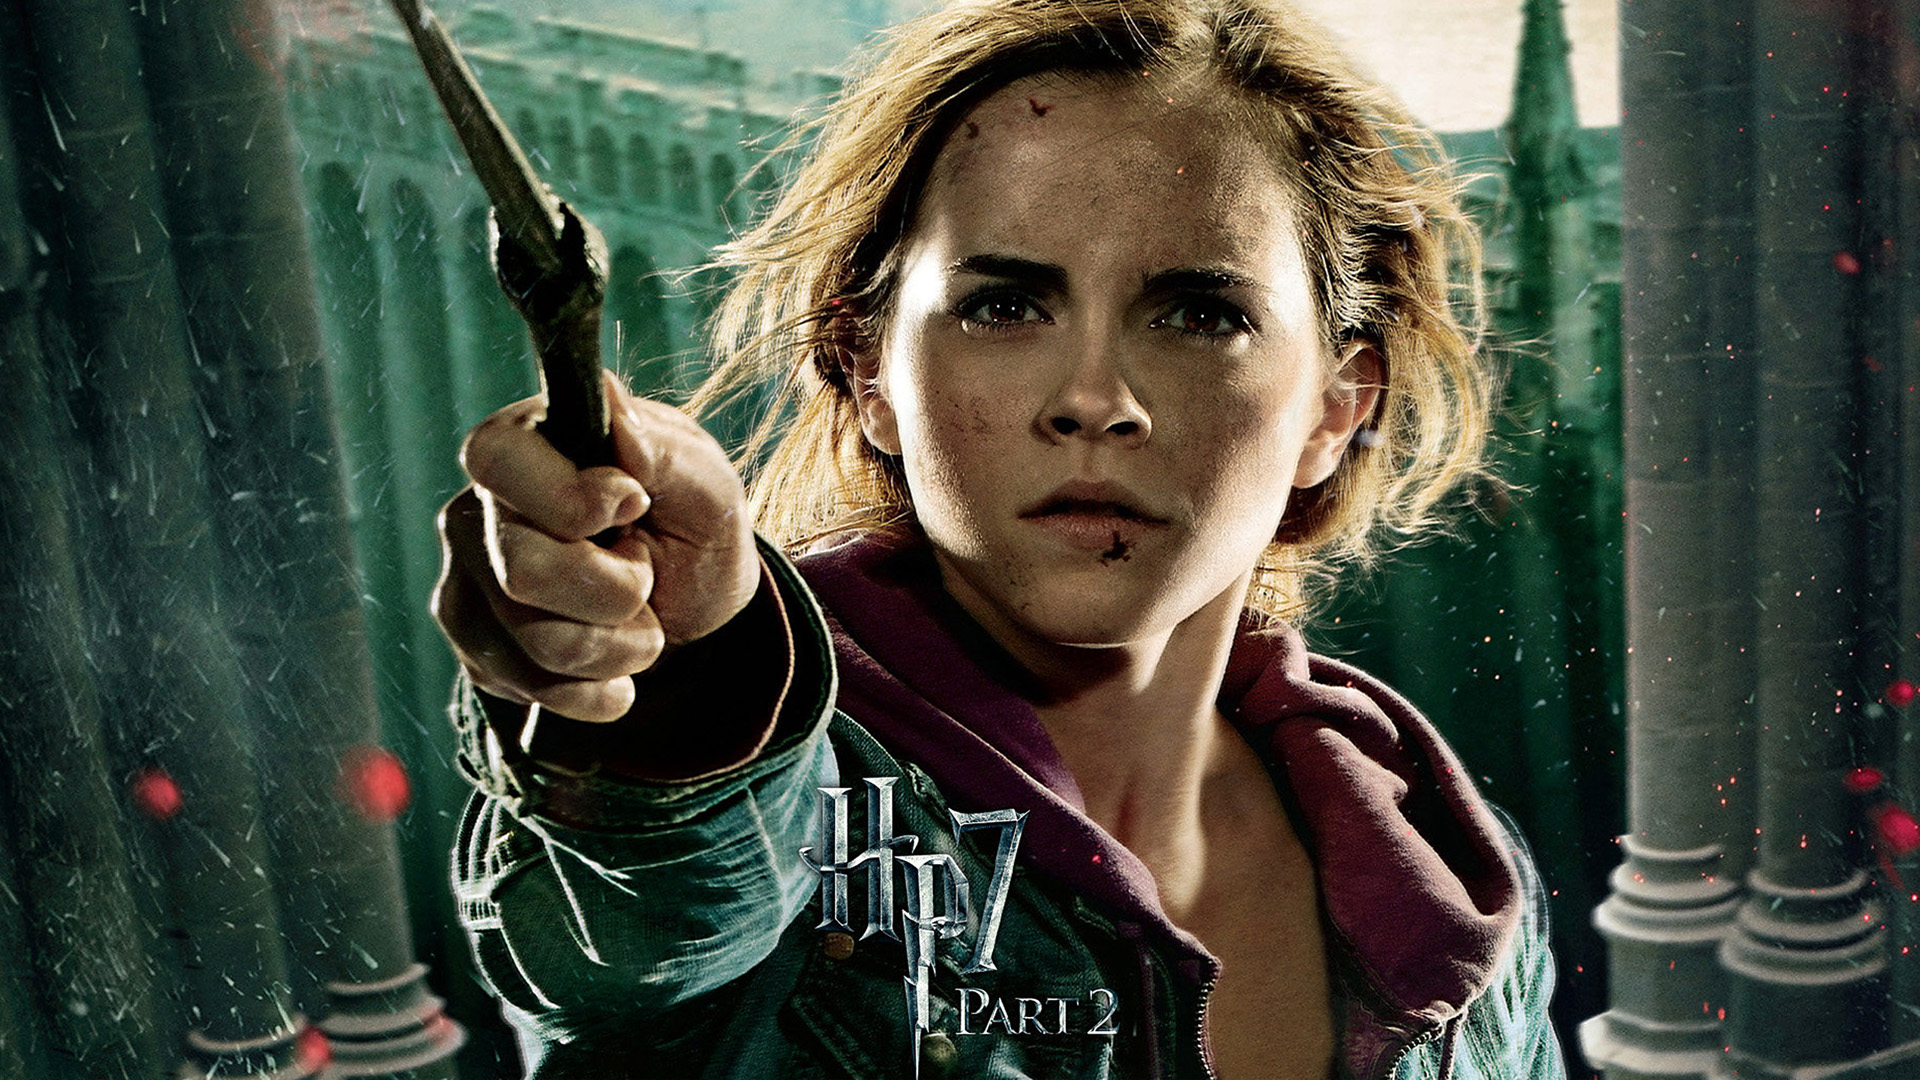 Harry Potter 7 Thely Hallows Part 2 Widescreen Wallpapers Pixels